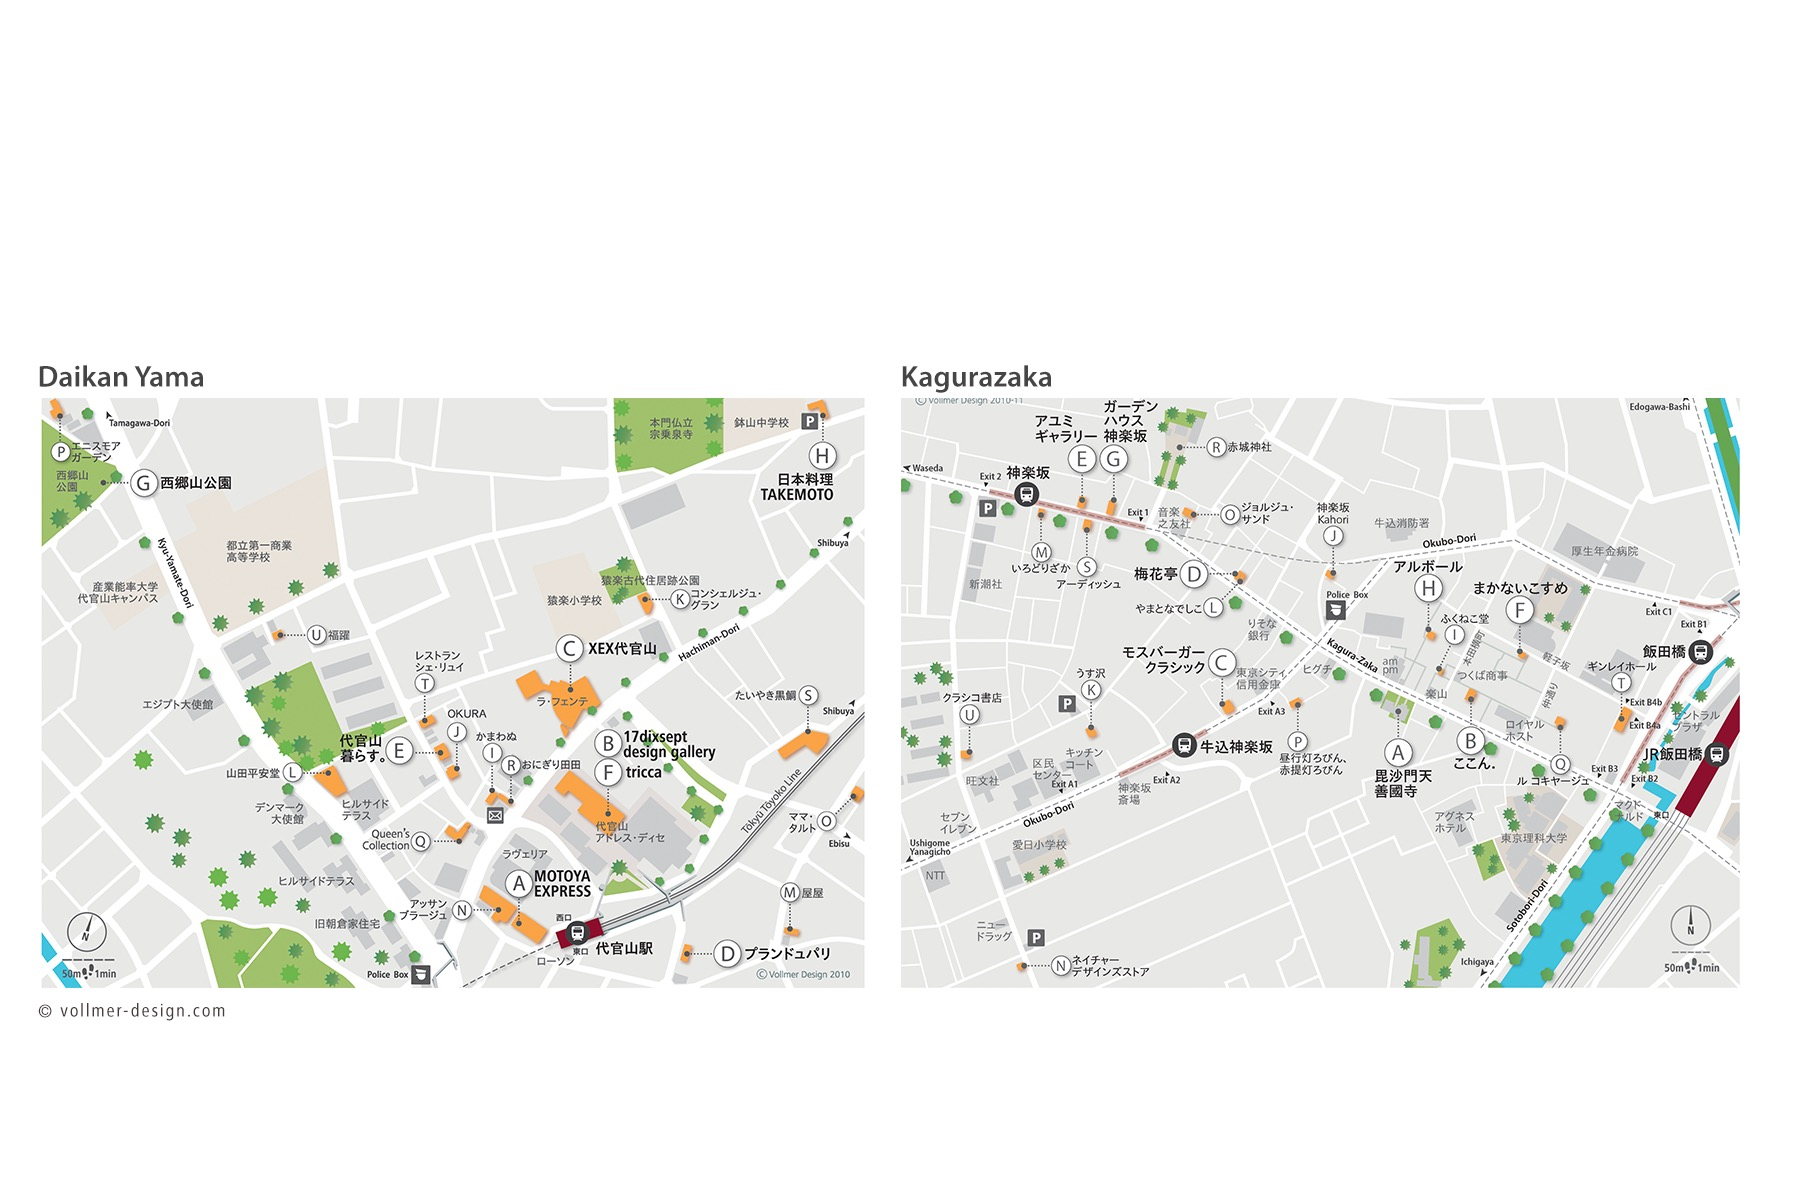 Daikan Yama Map & Kagurazaka Map